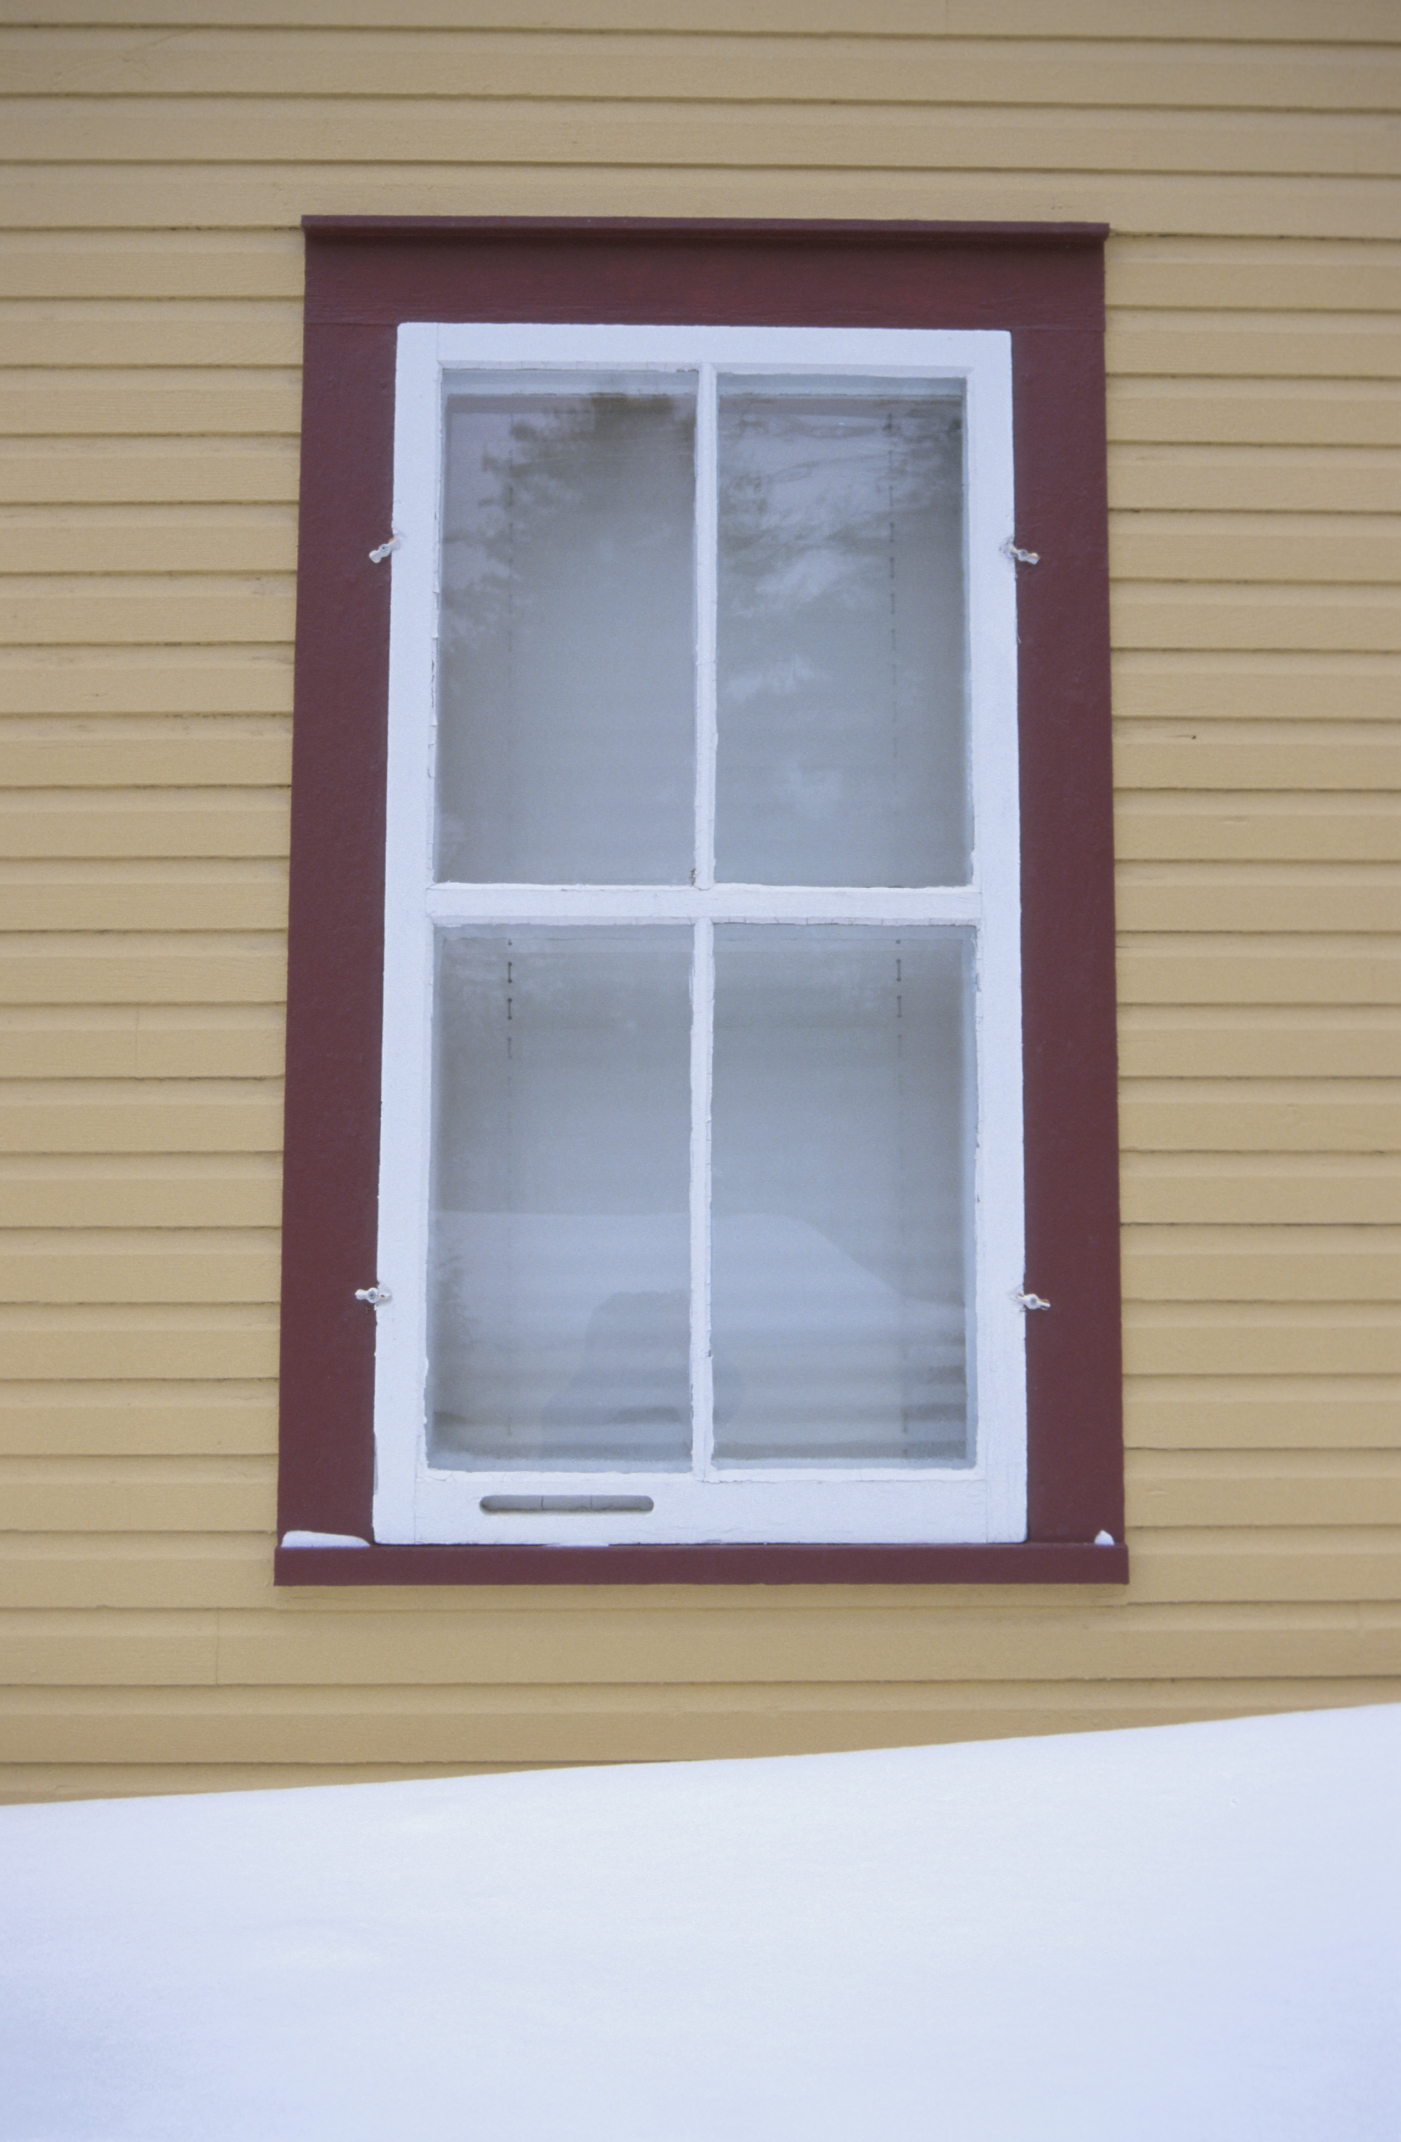 How To Install Exterior Trim Around A Window Home Guides